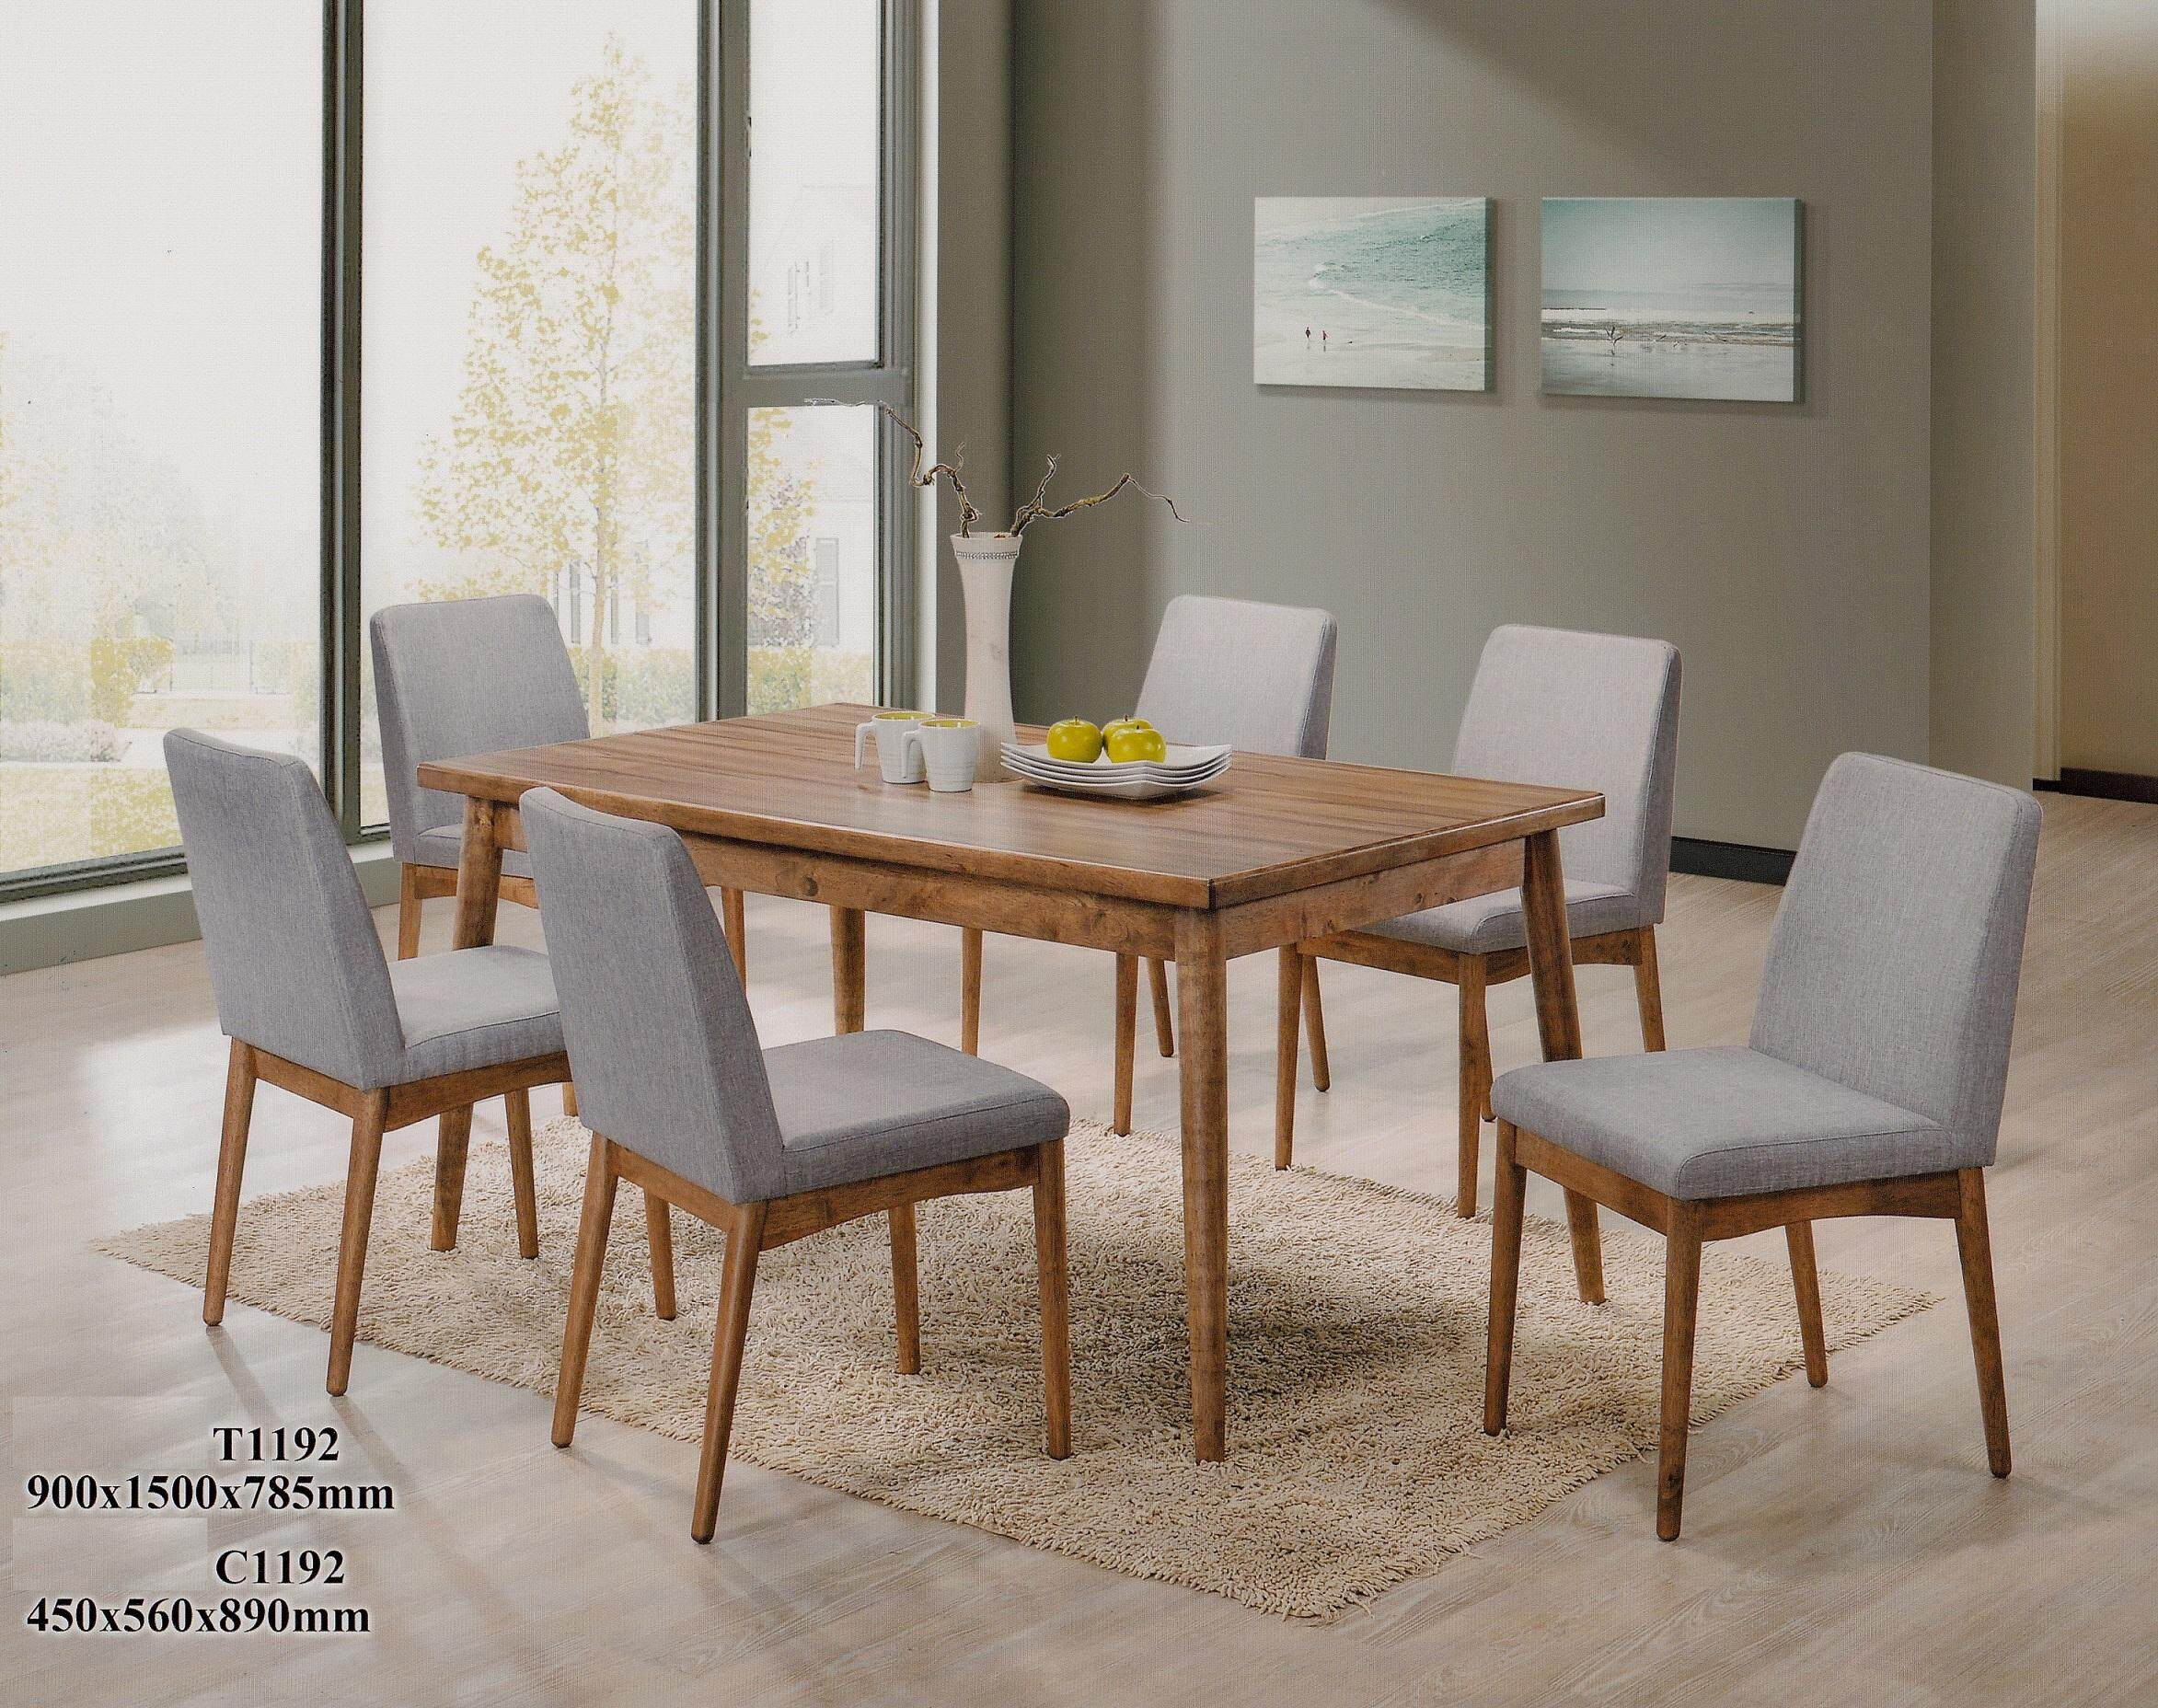 Scandinavian Furniture Outlet Perabot Price In Malaysia Best